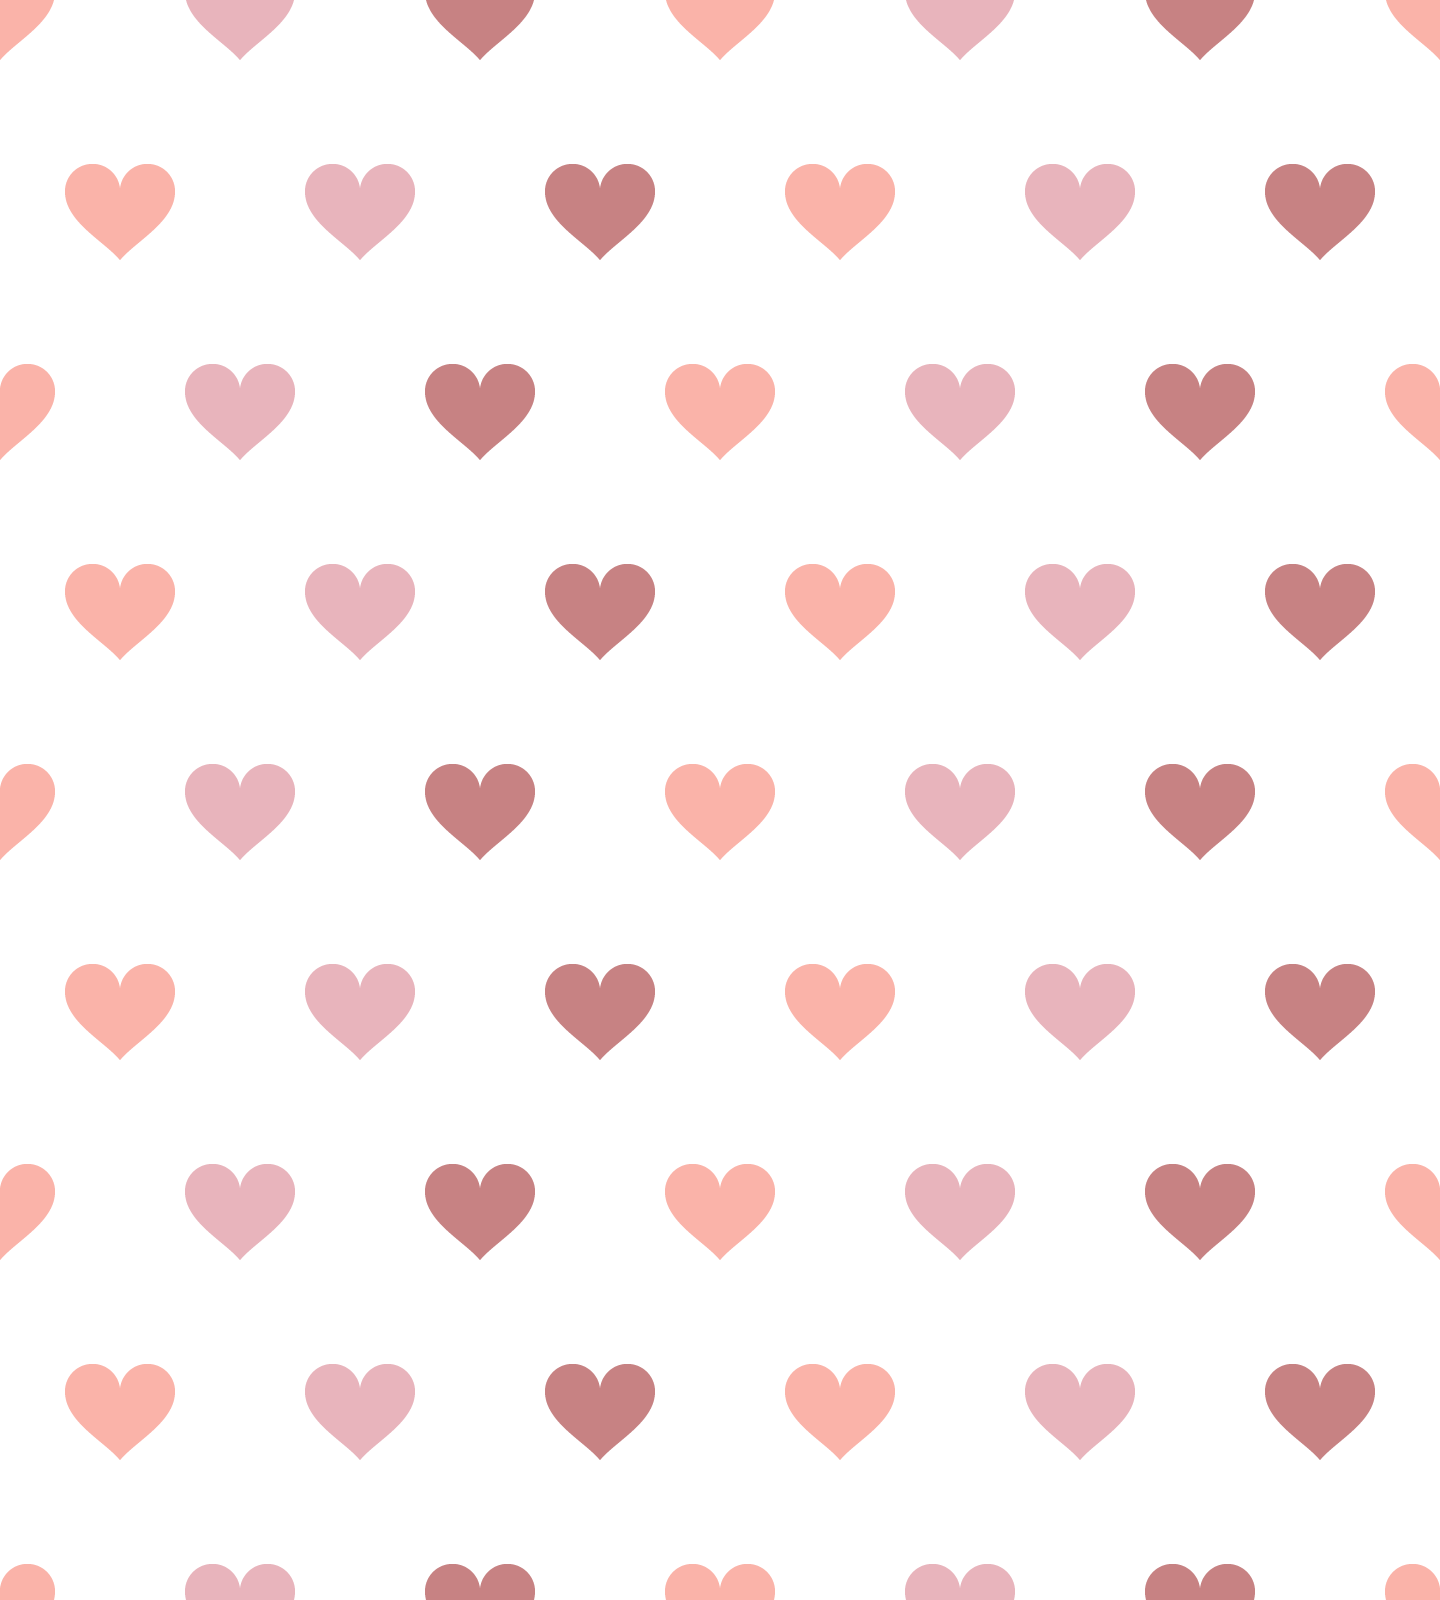 pink-hearts-vector-pattern-on-white-background-Shapes4FREE-lg